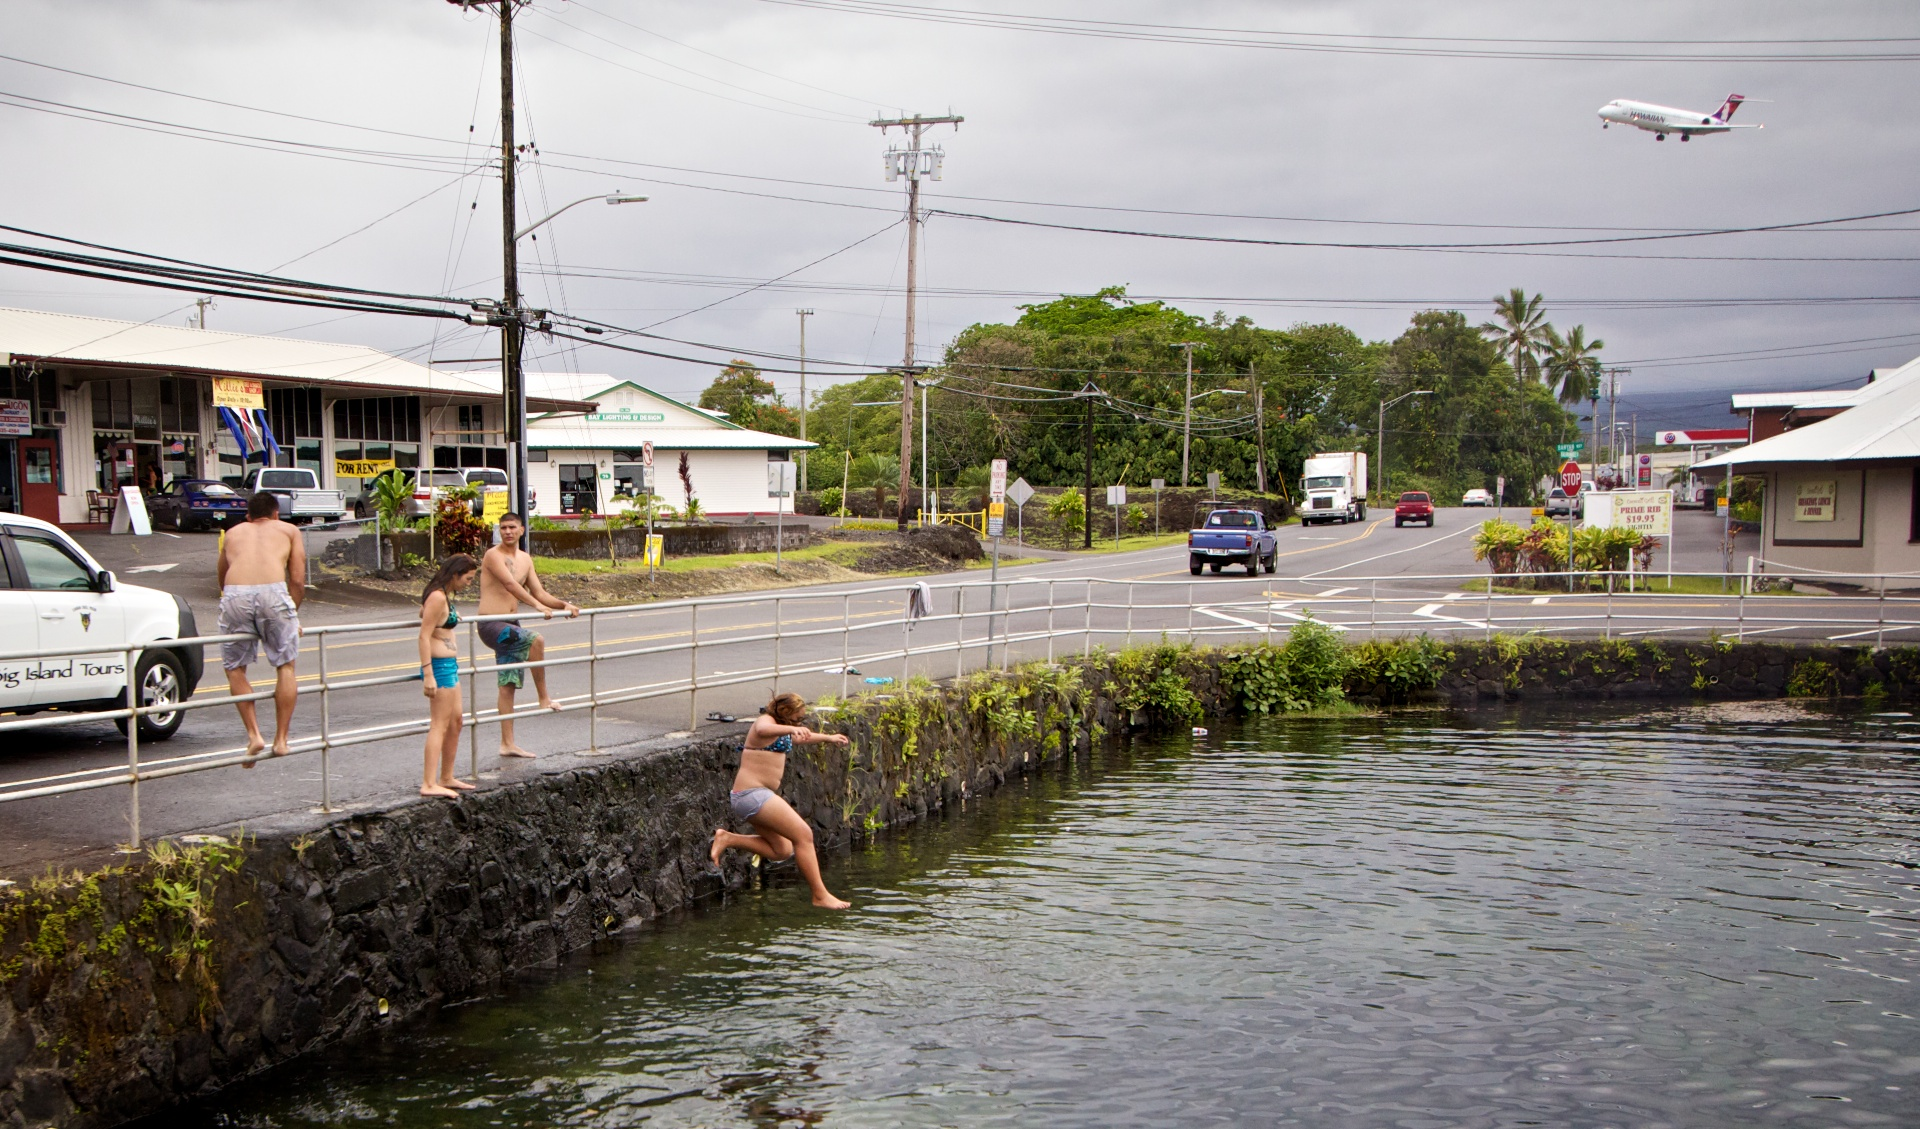 If you've lived in Hilo you can look at the photo and imagine the sounds, smells and feeling of a typical Hilo day.